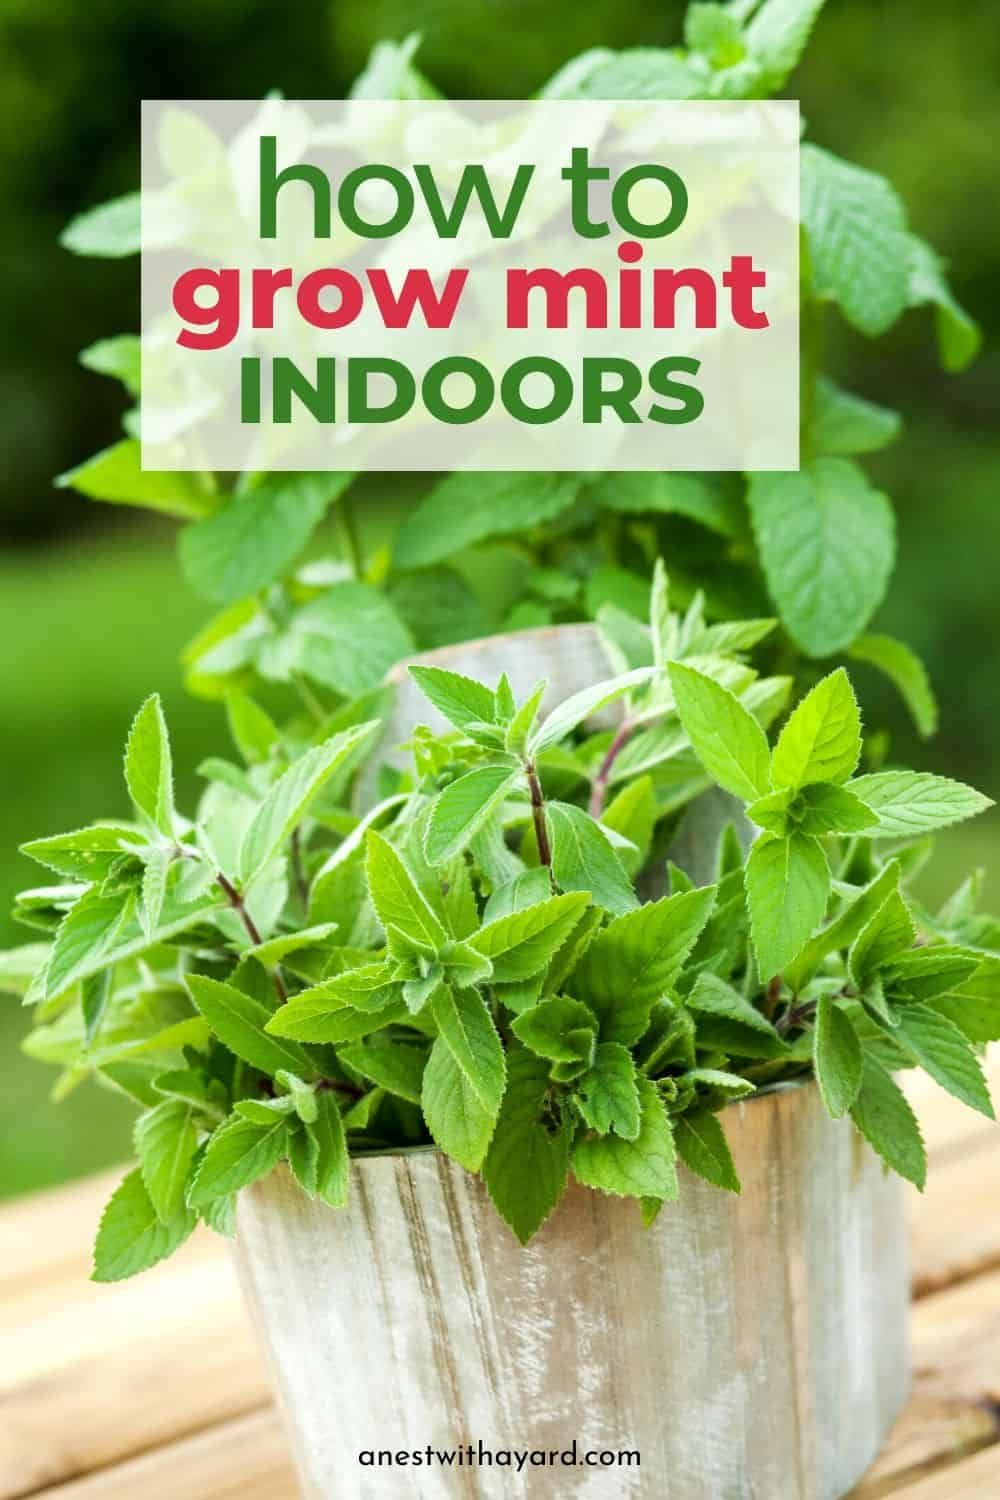 Growing Mint Indoors 2020 Proper Watering And Care A Nest With A Yard In 2020 Growing Mint Indoors Growing Mint Mint Plants